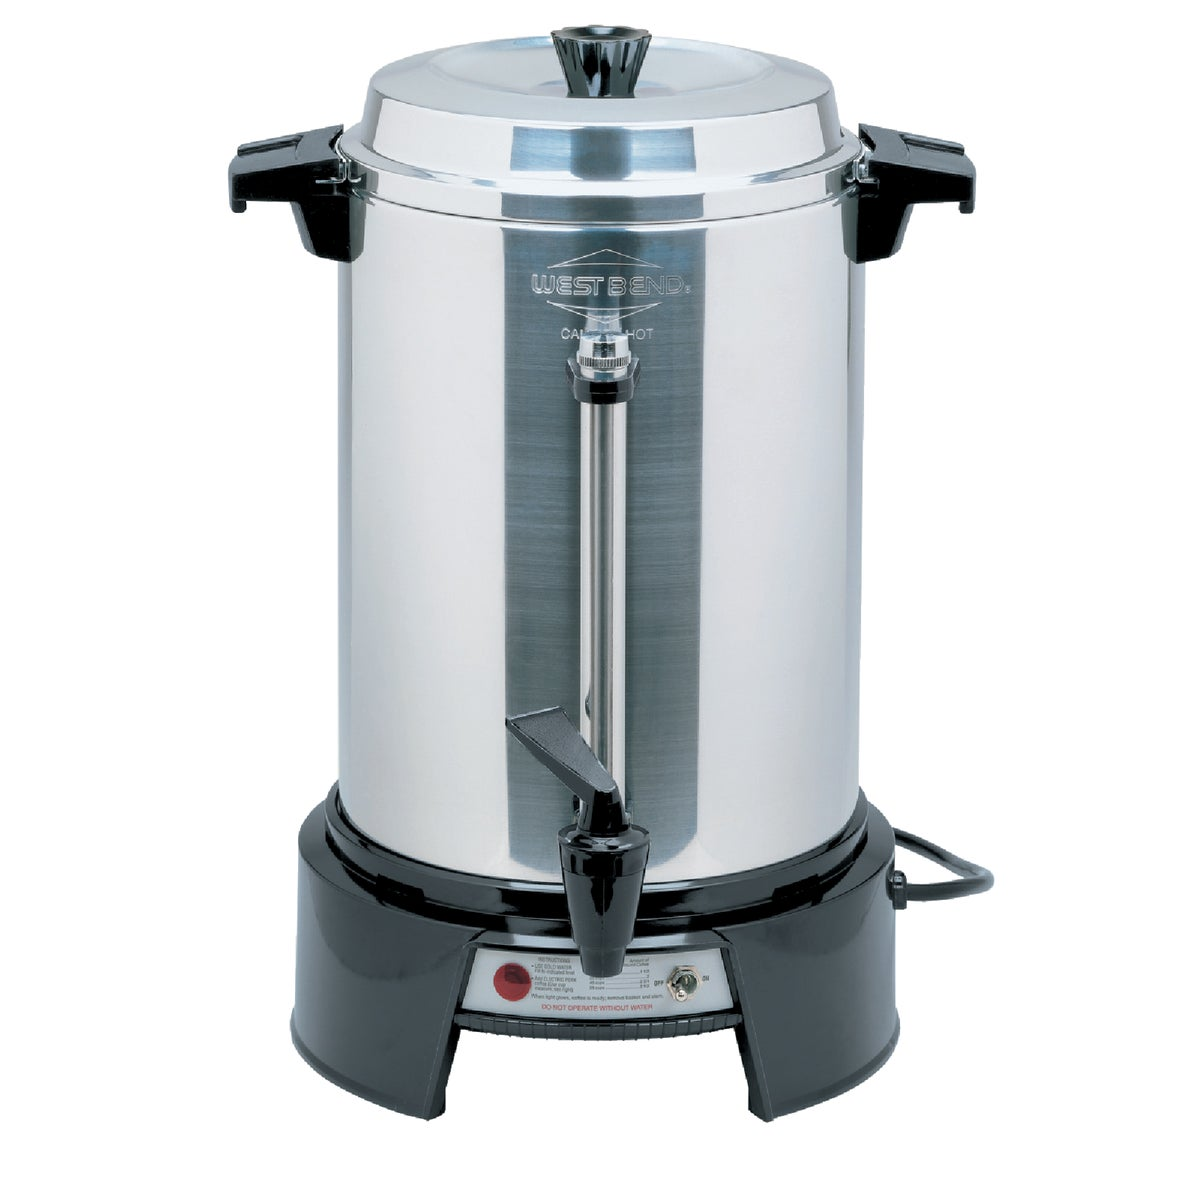 55 CUP ALUM COFFEE MAKER - 13500 by Focus Electrics Llc